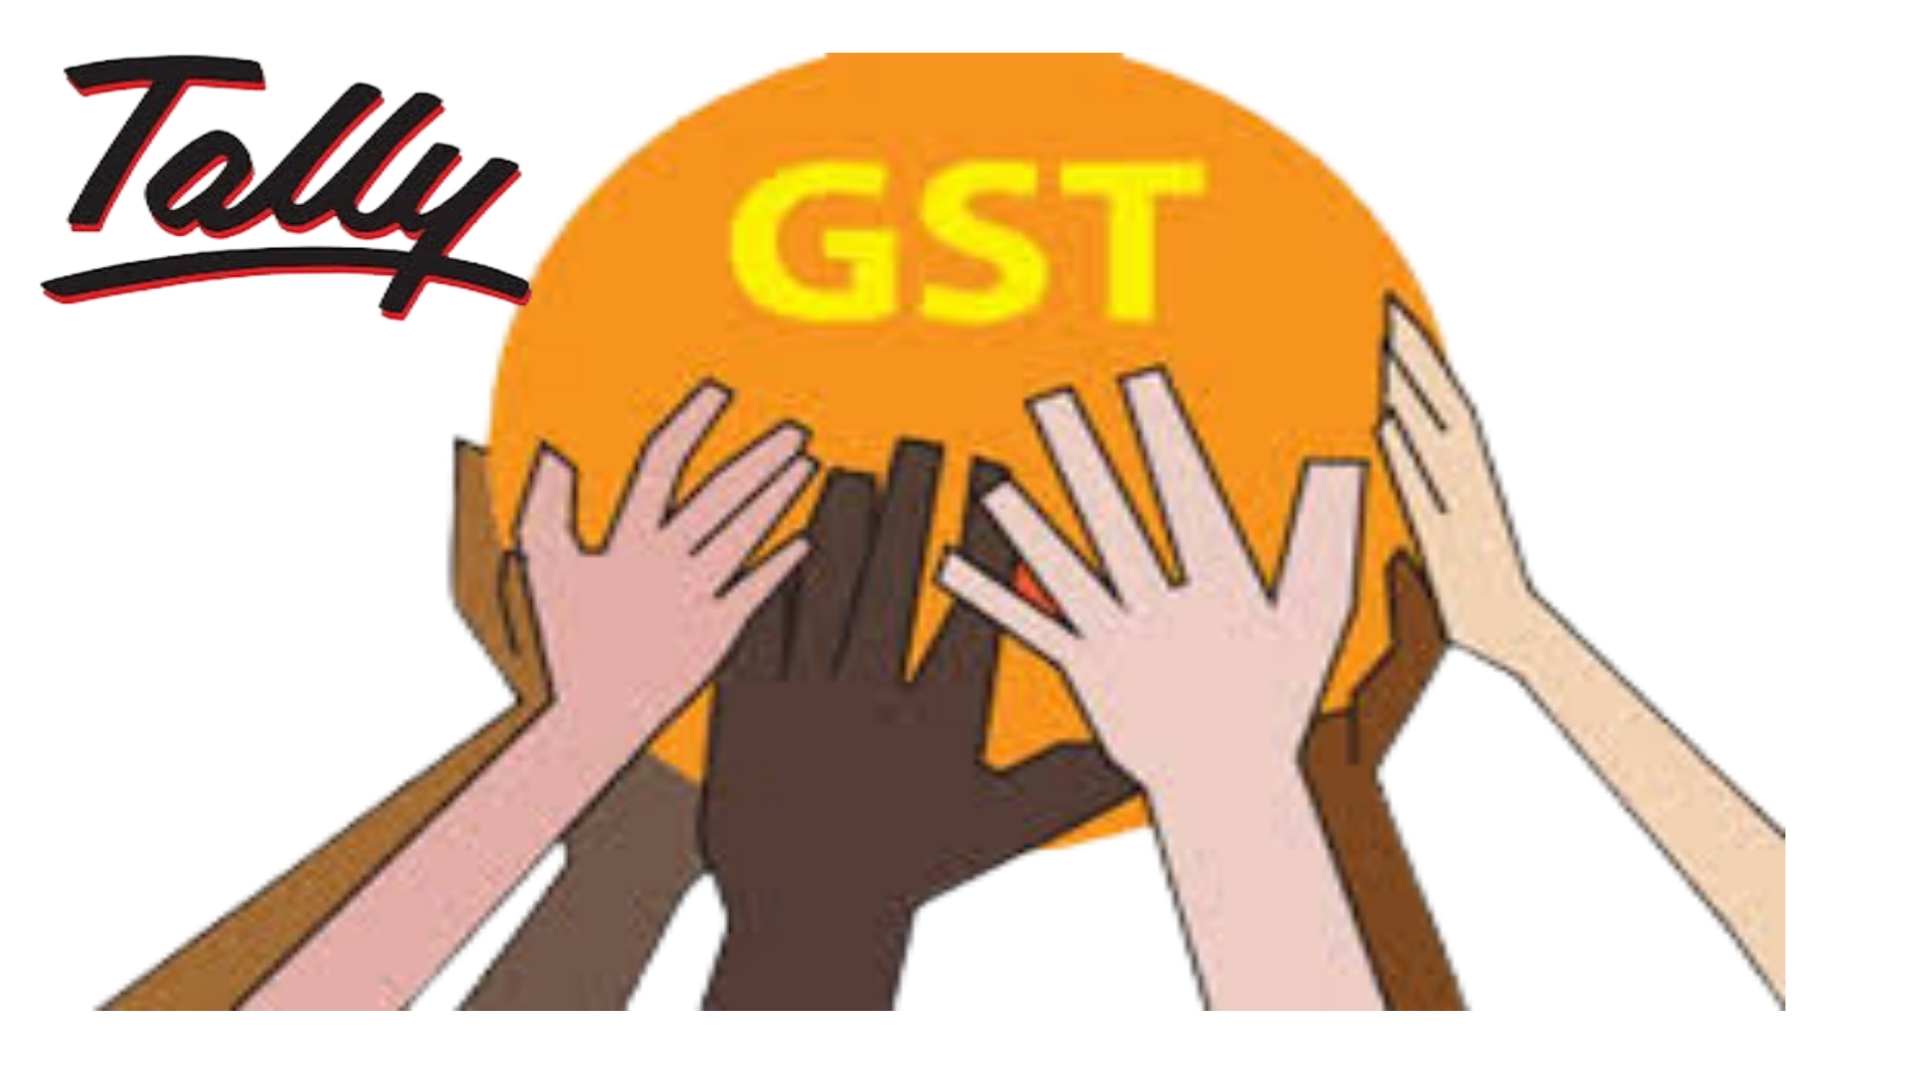 Difference between igst cgst and sgst